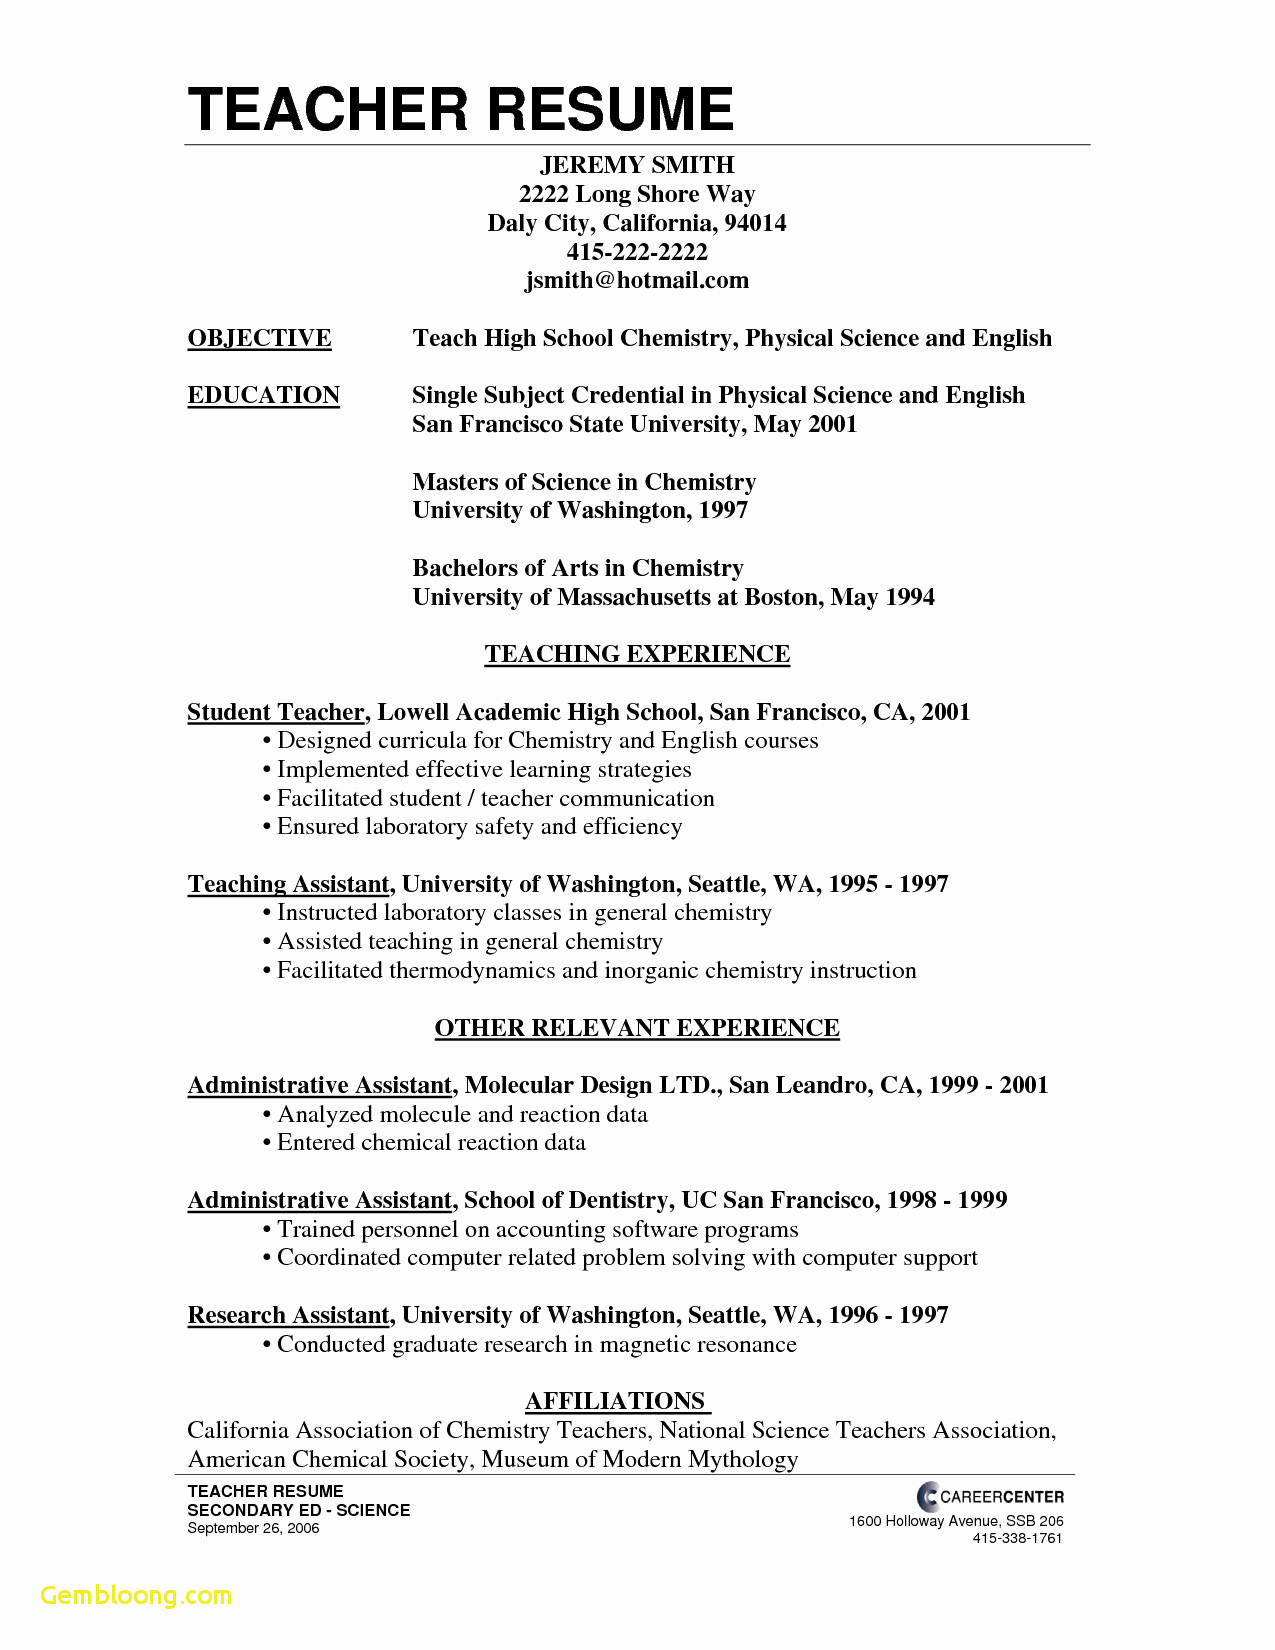 Letter to Troops Template - Military Experience Resume Examples Download Hr Resume Sample Luxury